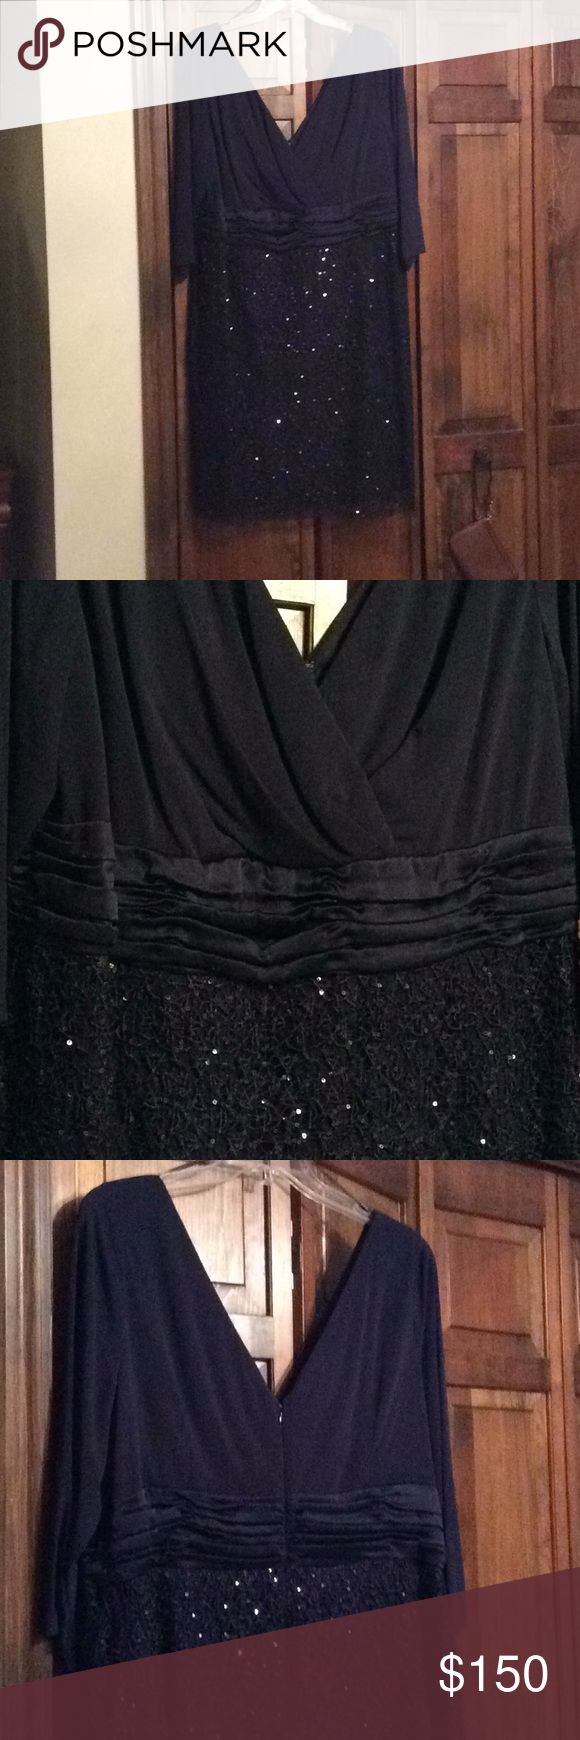 Embellished Kay Unger dress never worn Navy blue Kay Unger dress perfect for the mother of the bride or any formal occasion. Never worn but no tags. In original packaging. Deep v neck and v back with back zipper..3/4 length sleeve that is hard to find. Bought it for my daughter's wedding but it just never fit right. Kay Unger Dresses